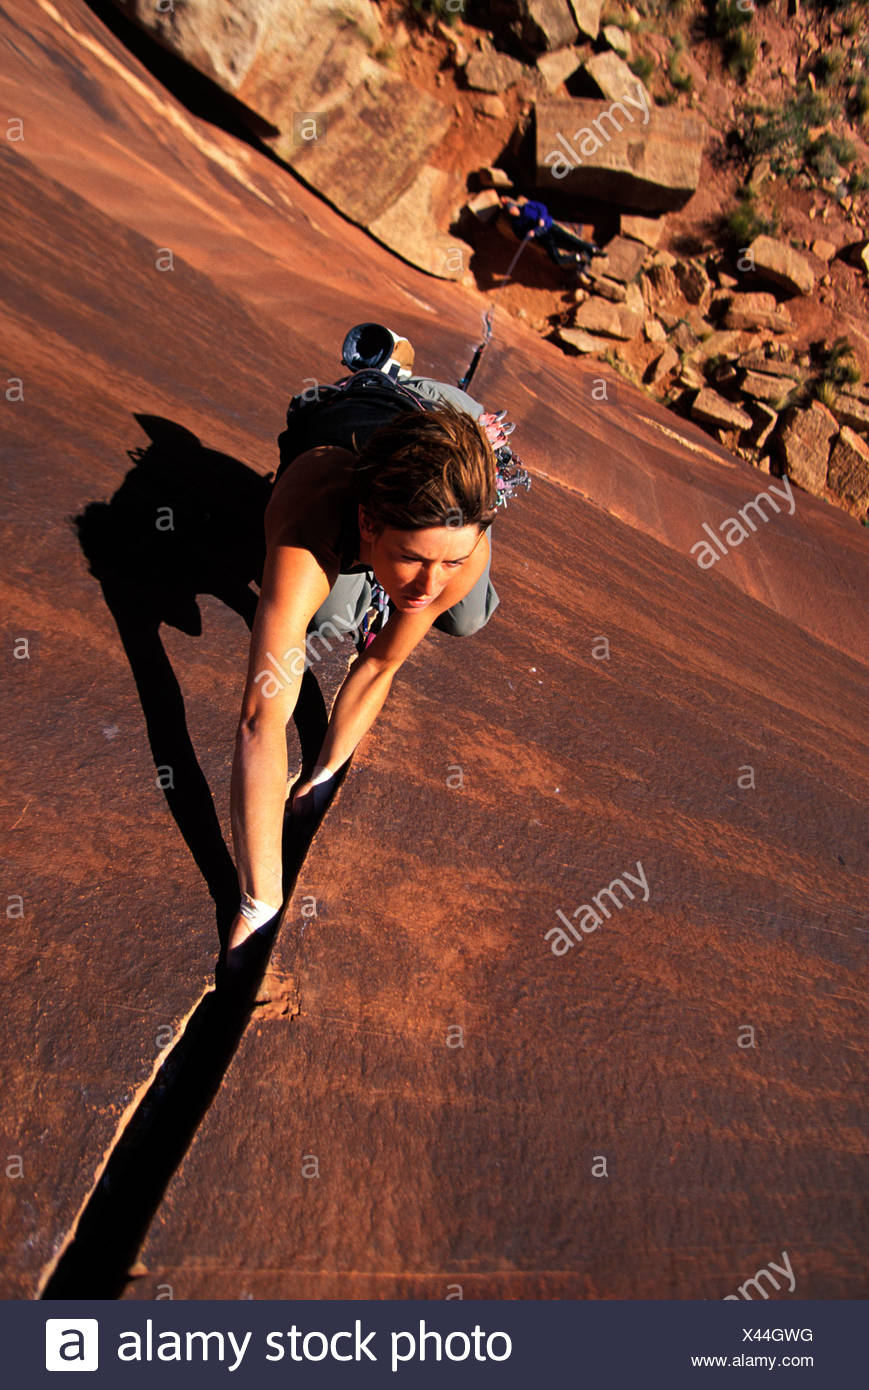 Female crack climbing (High Angle Perspective). - Stock Image